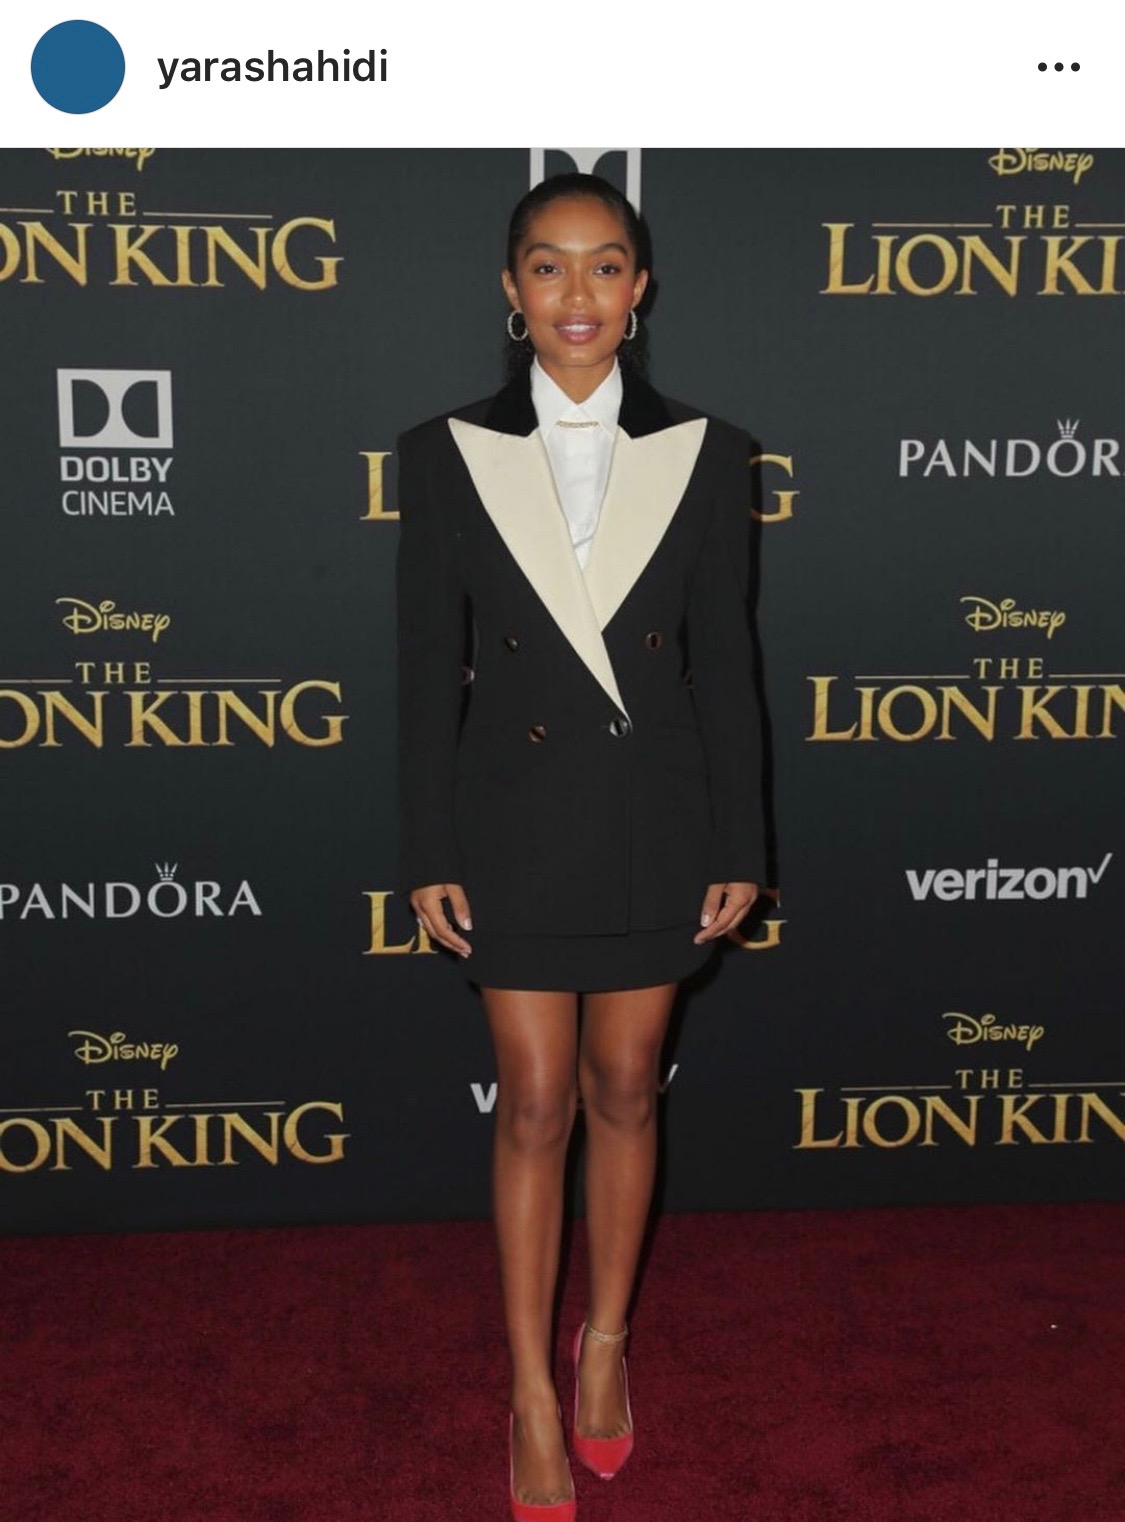 style-Yara-Shahidi-in-Gucci-at-lion-king-premiere.jpeg